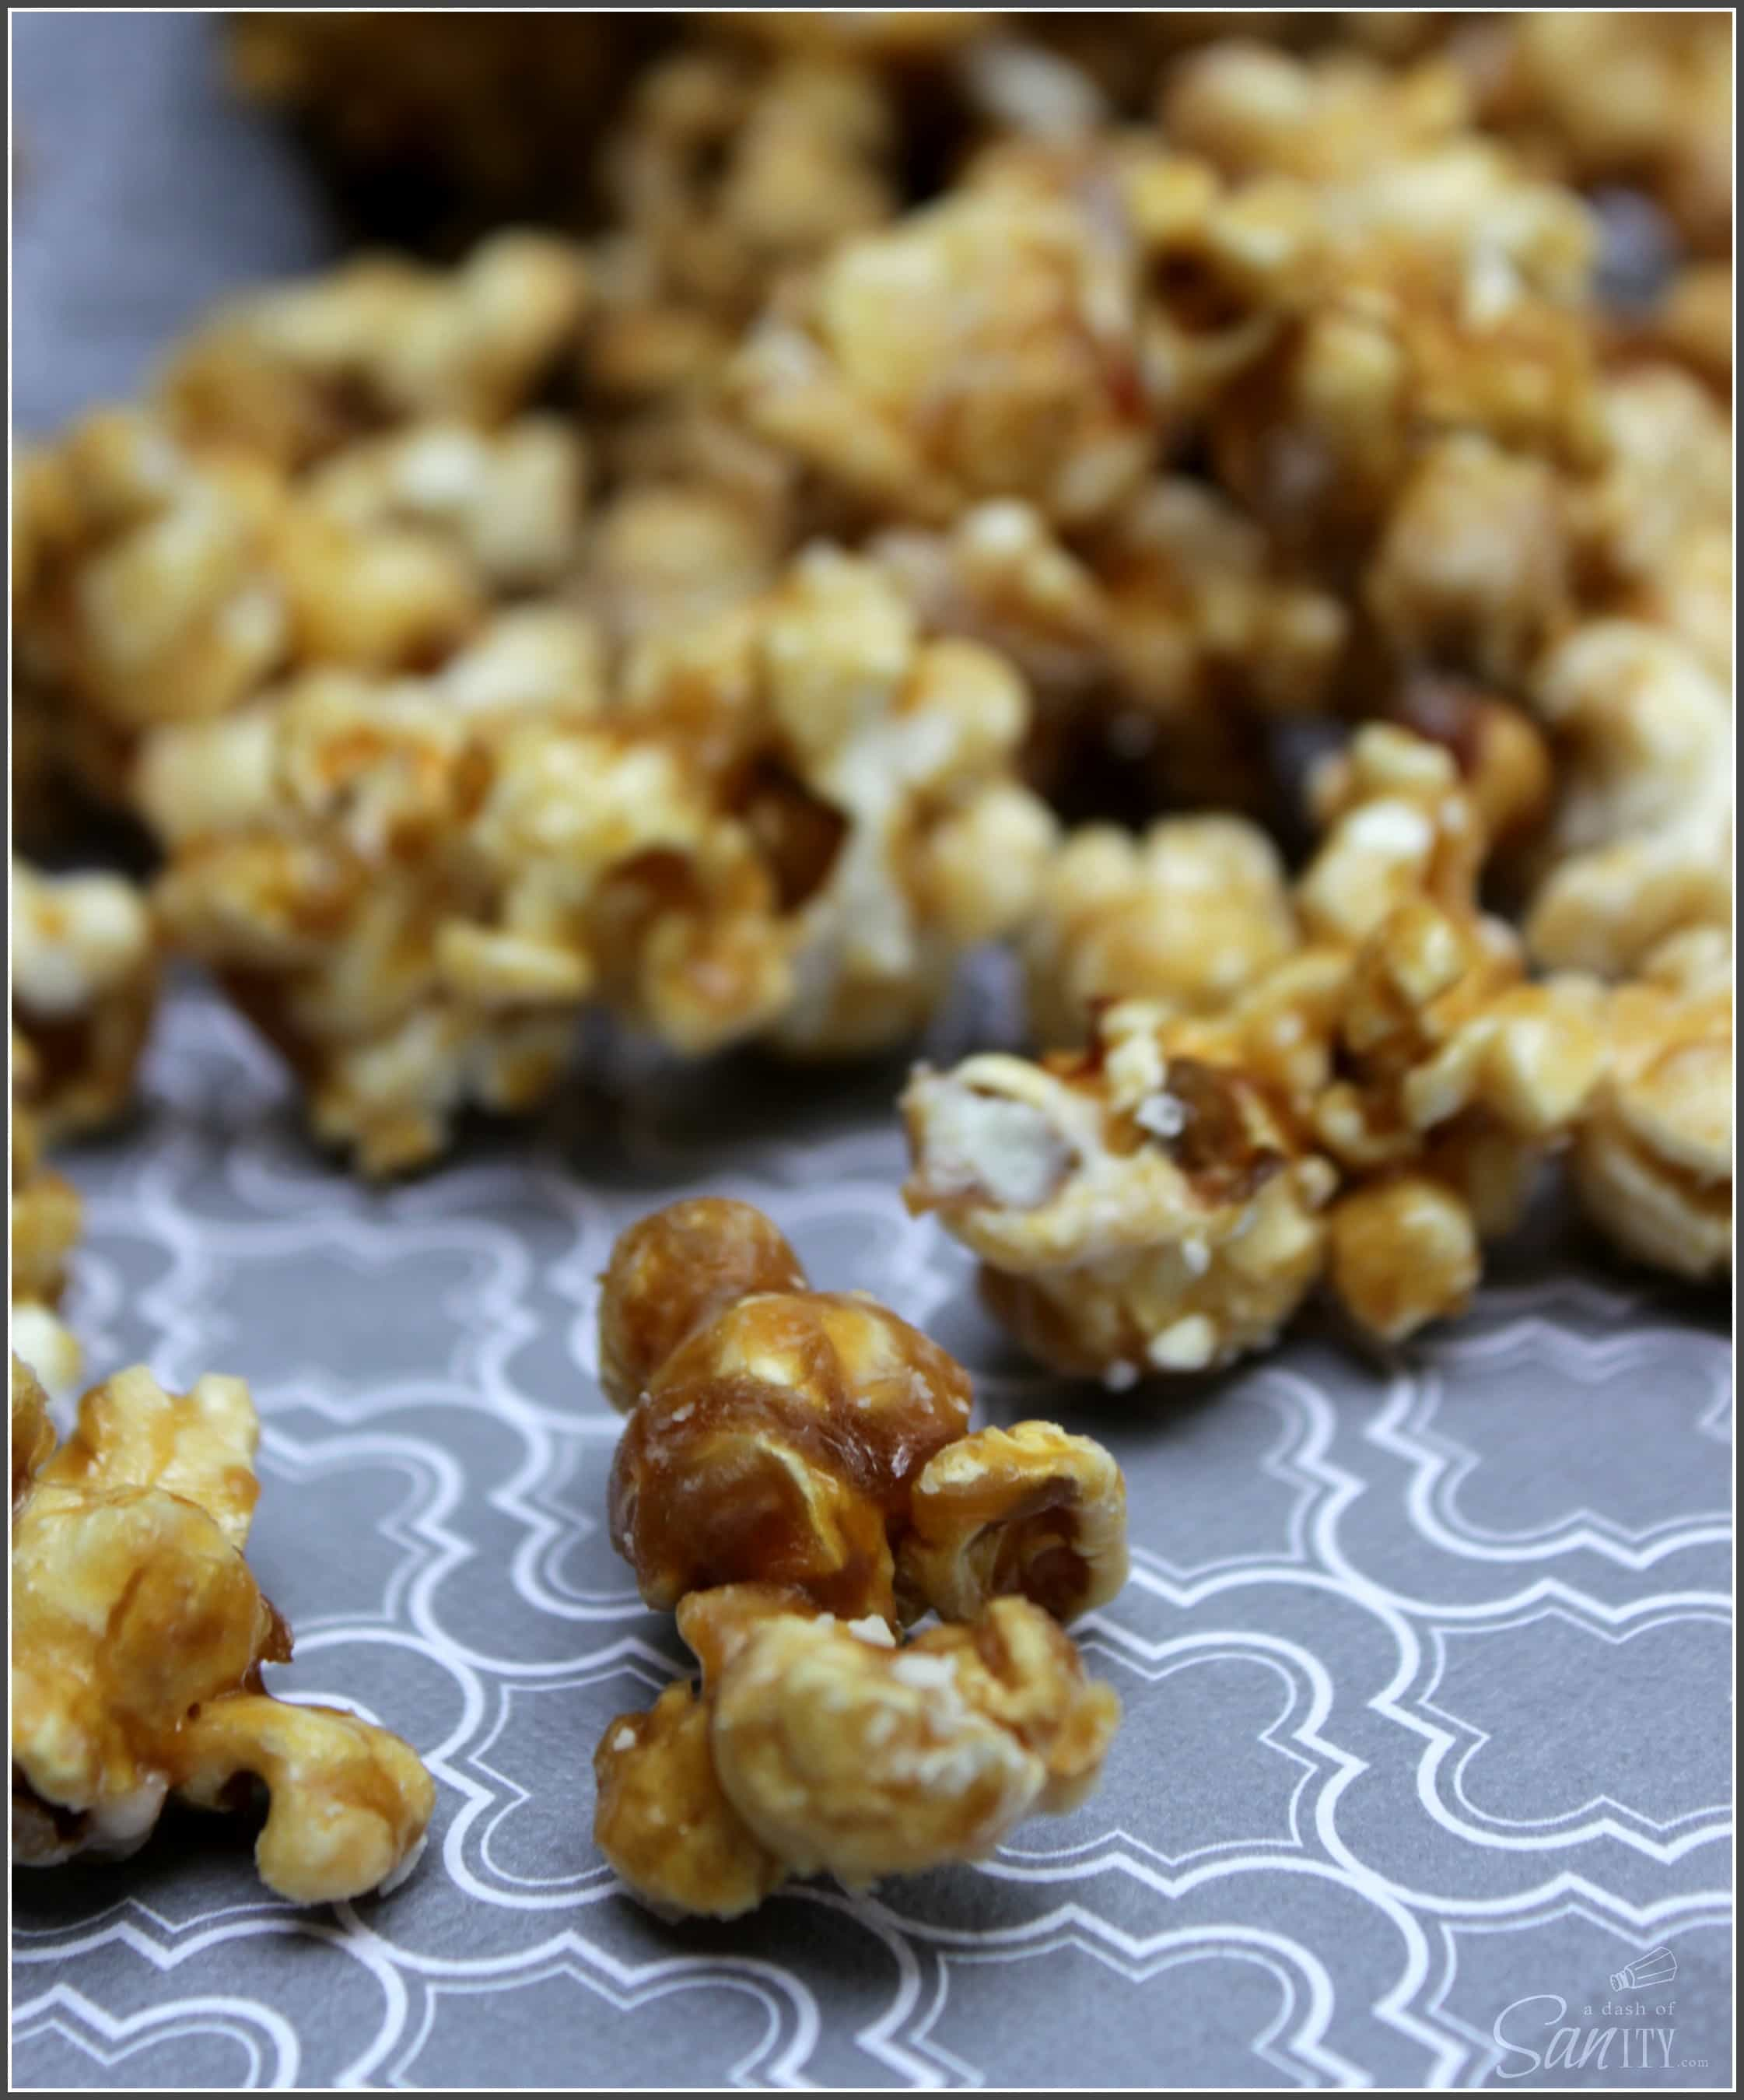 White Chocolate Caramel Corn is an addictive delicious treat. Dress up classic caramel corn with white chocolate and you have one of the best snacks ever.